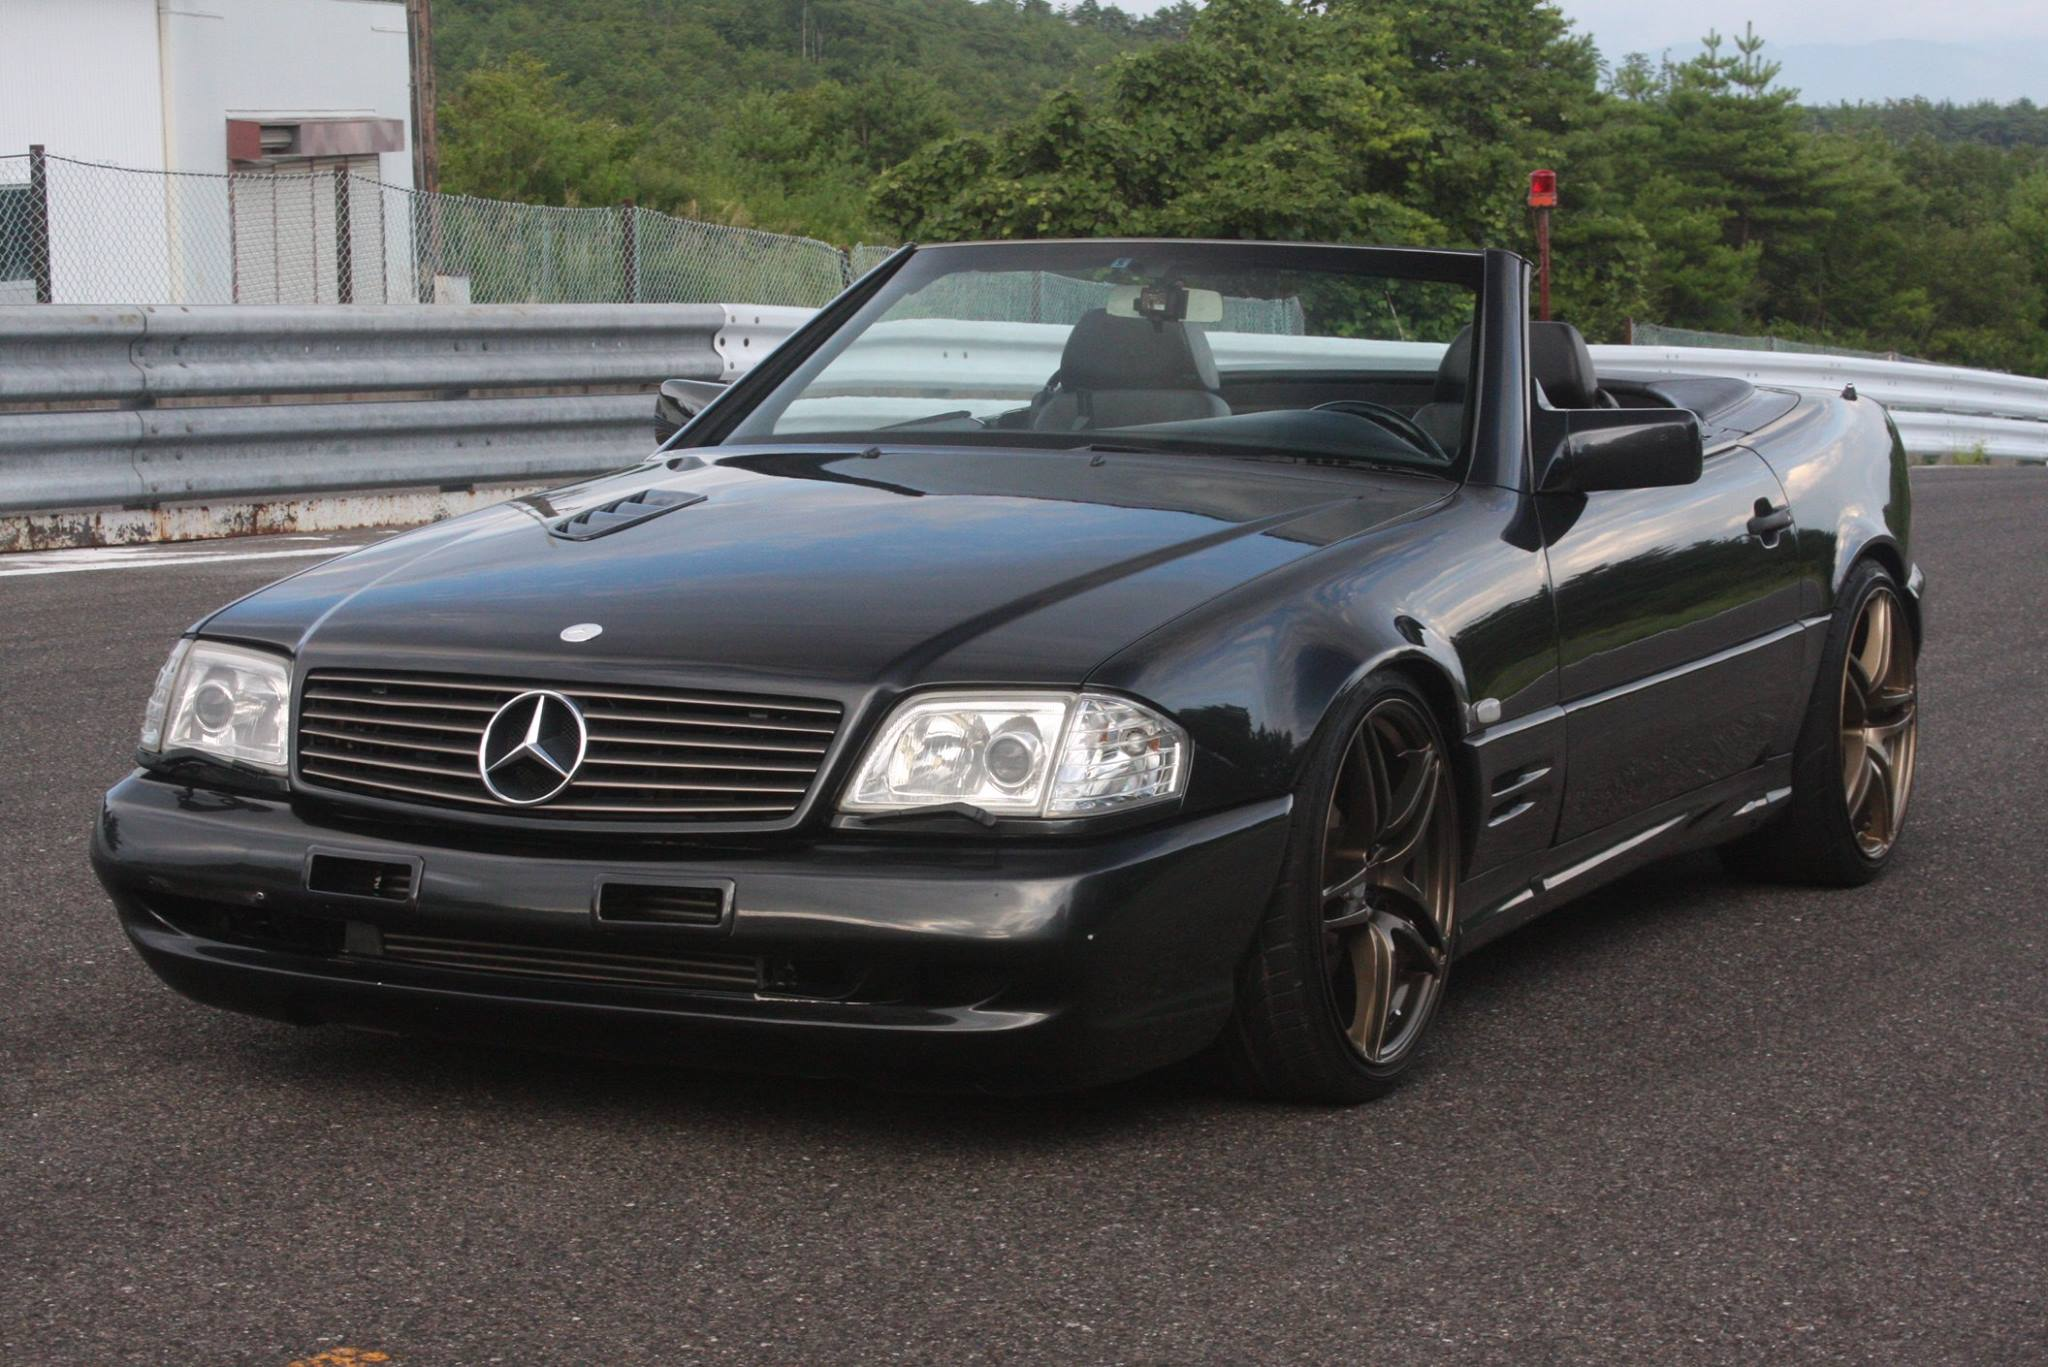 1991 mercedes 500sl with a 2jz gte engine swap depot. Black Bedroom Furniture Sets. Home Design Ideas